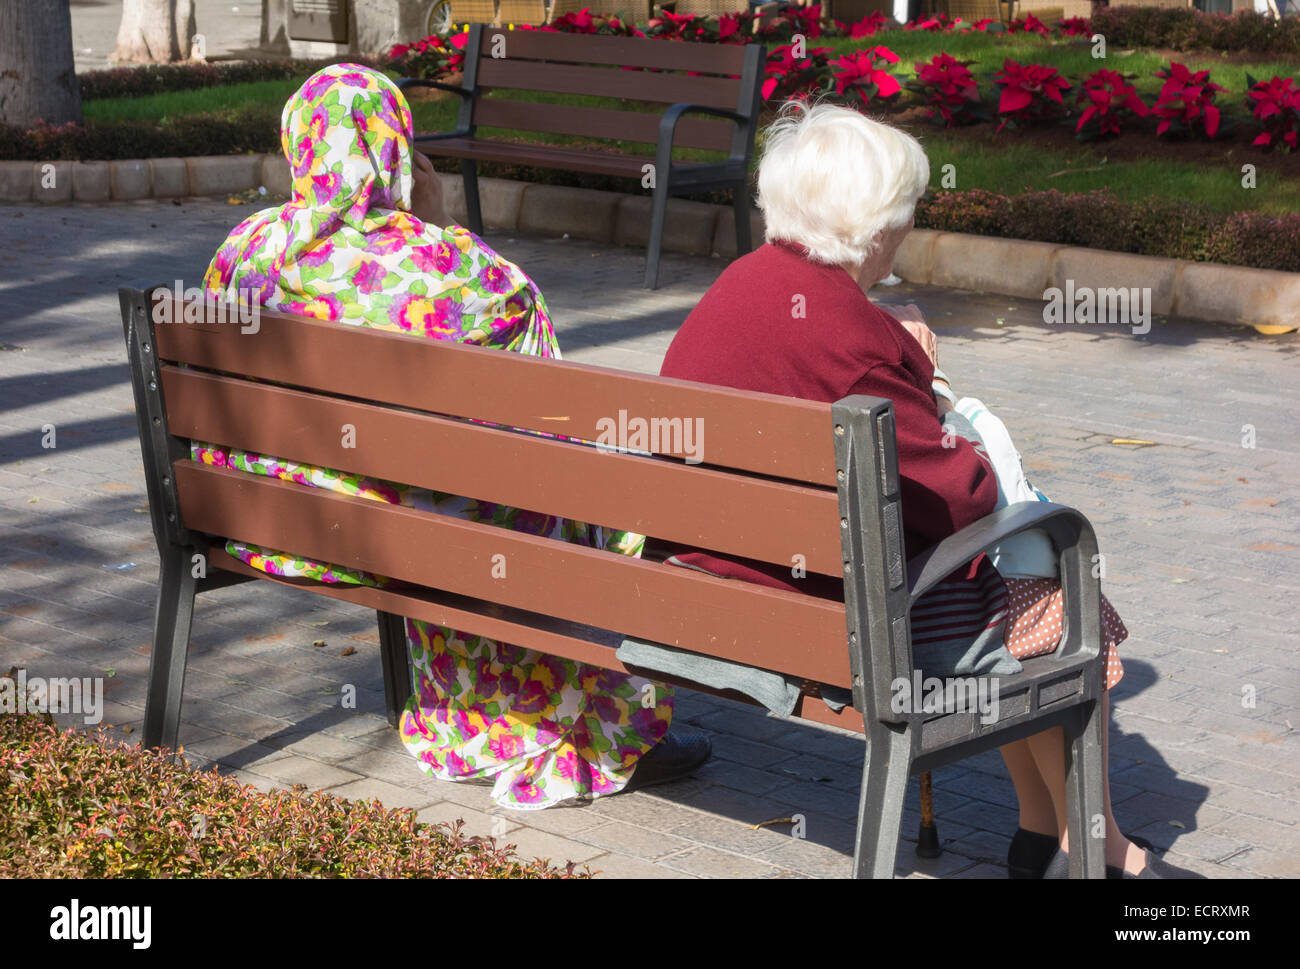 Elderly Spanish woman and woman from Western Sahara sitting on seat in Las Palmas, Gran Canaria, Canary Islands, - Stock Image